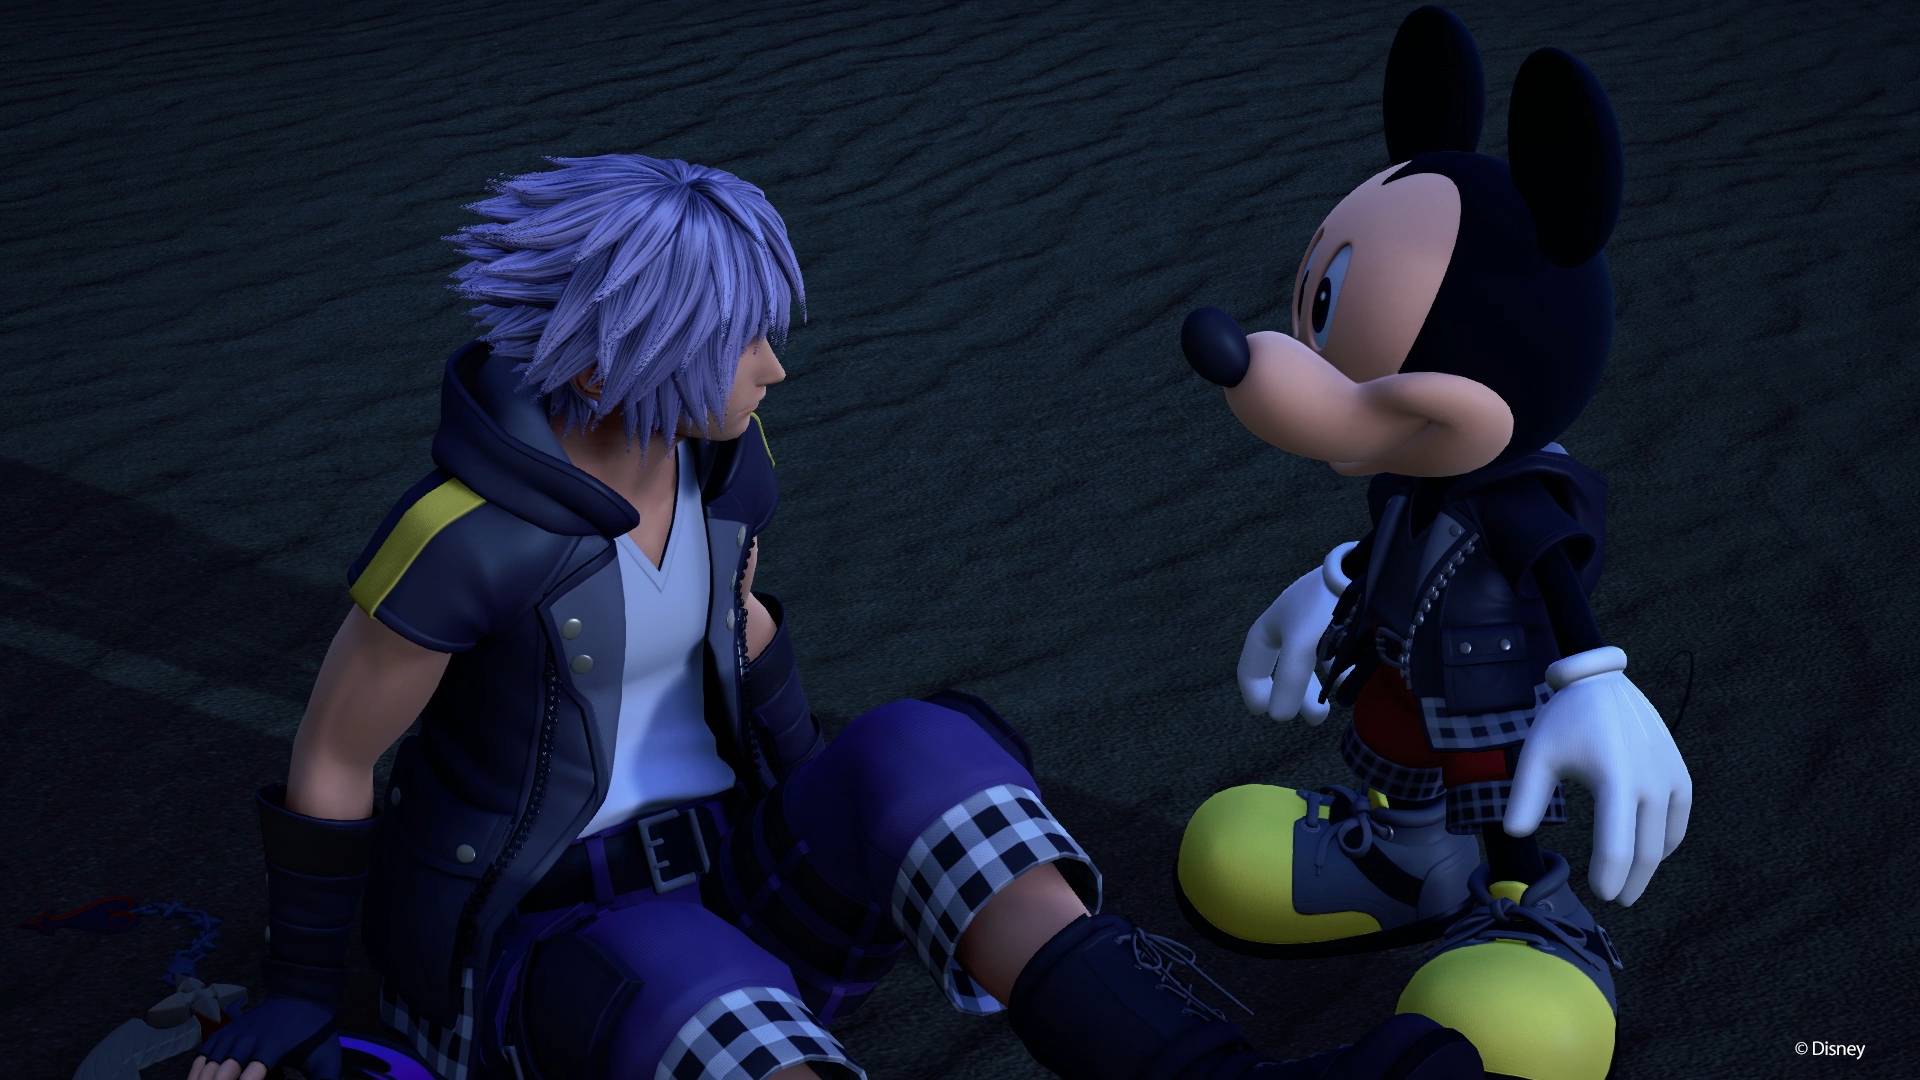 kingdom of hearts dating site Hd sora kingdom hearts 3d (2012) a young keyblade wielder who attempts the mark of mastery exam to learn new powers world of ff sora world of final fantasy (2016.